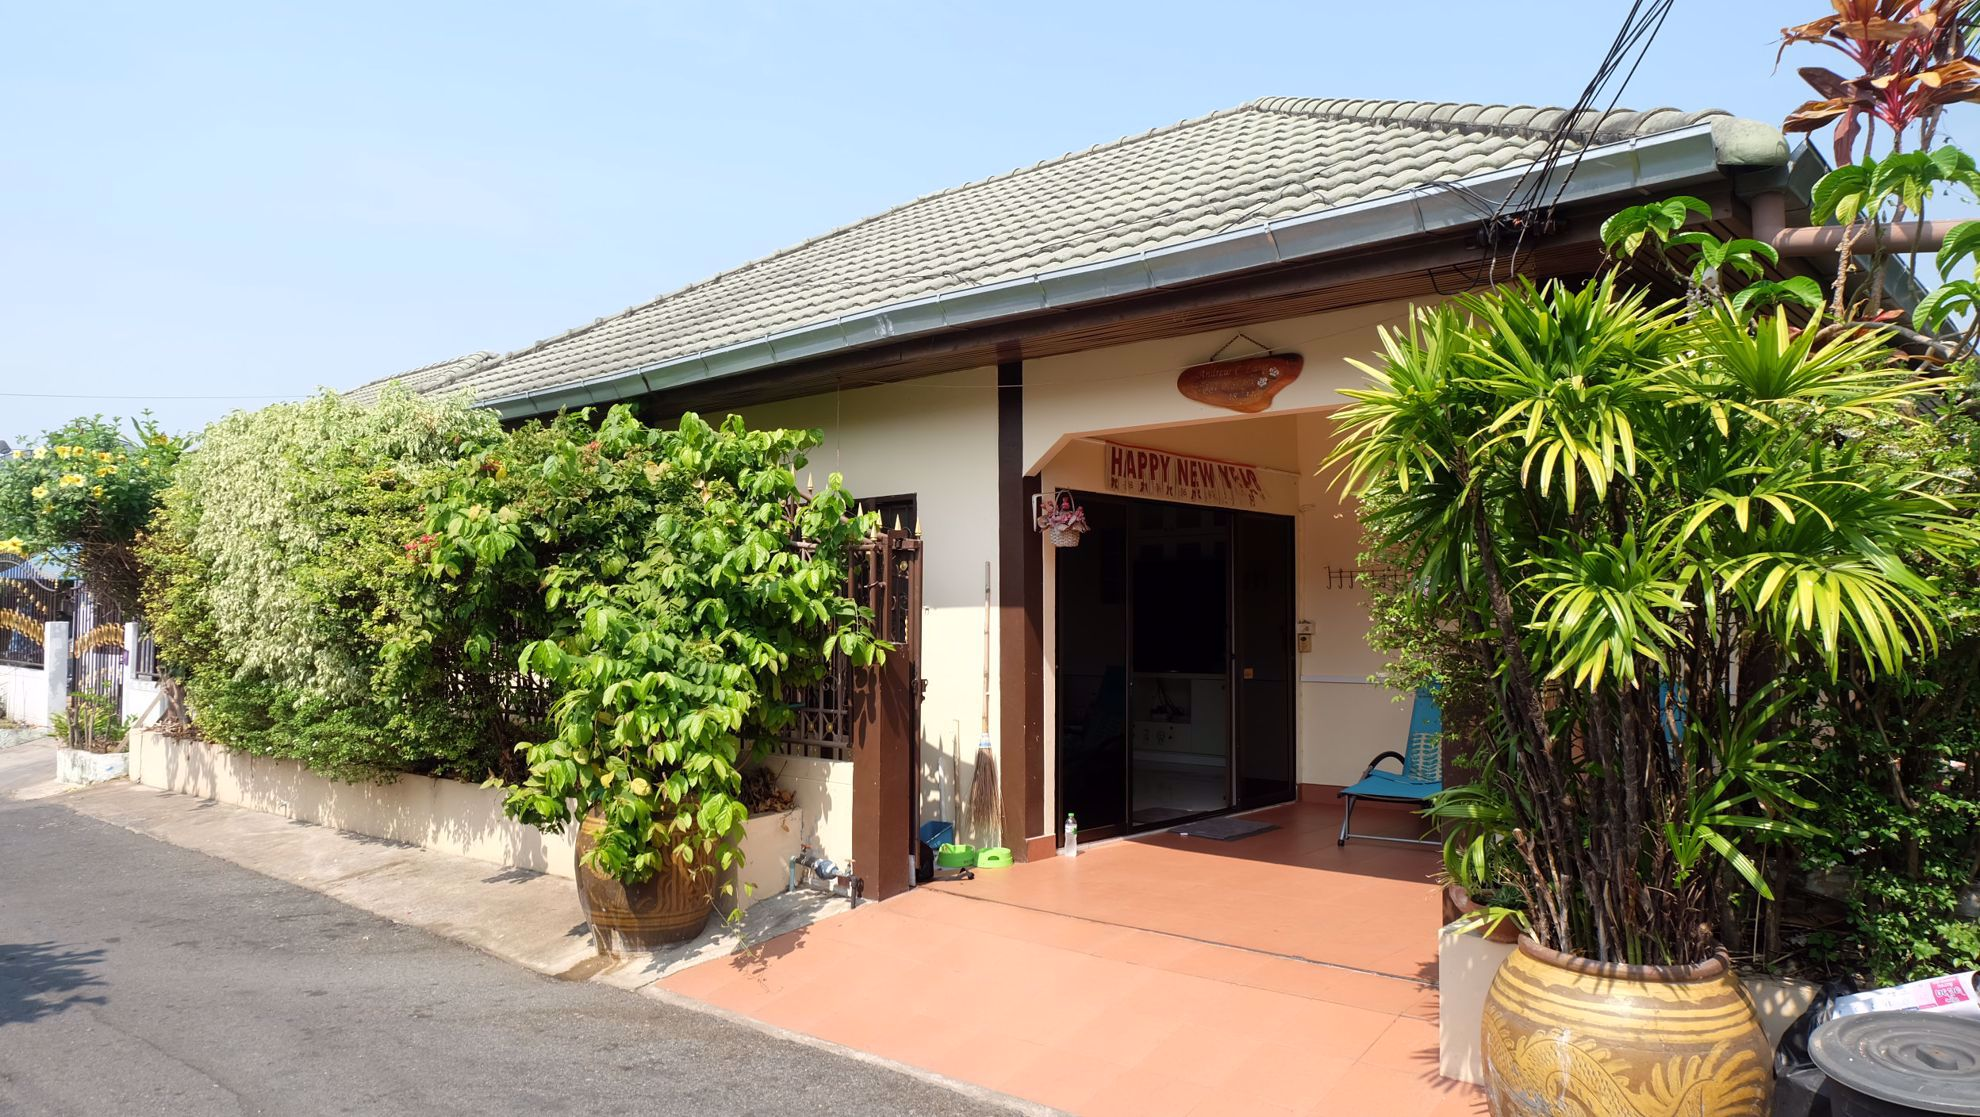 2 Bedroom House in Chatkaew 9 Village